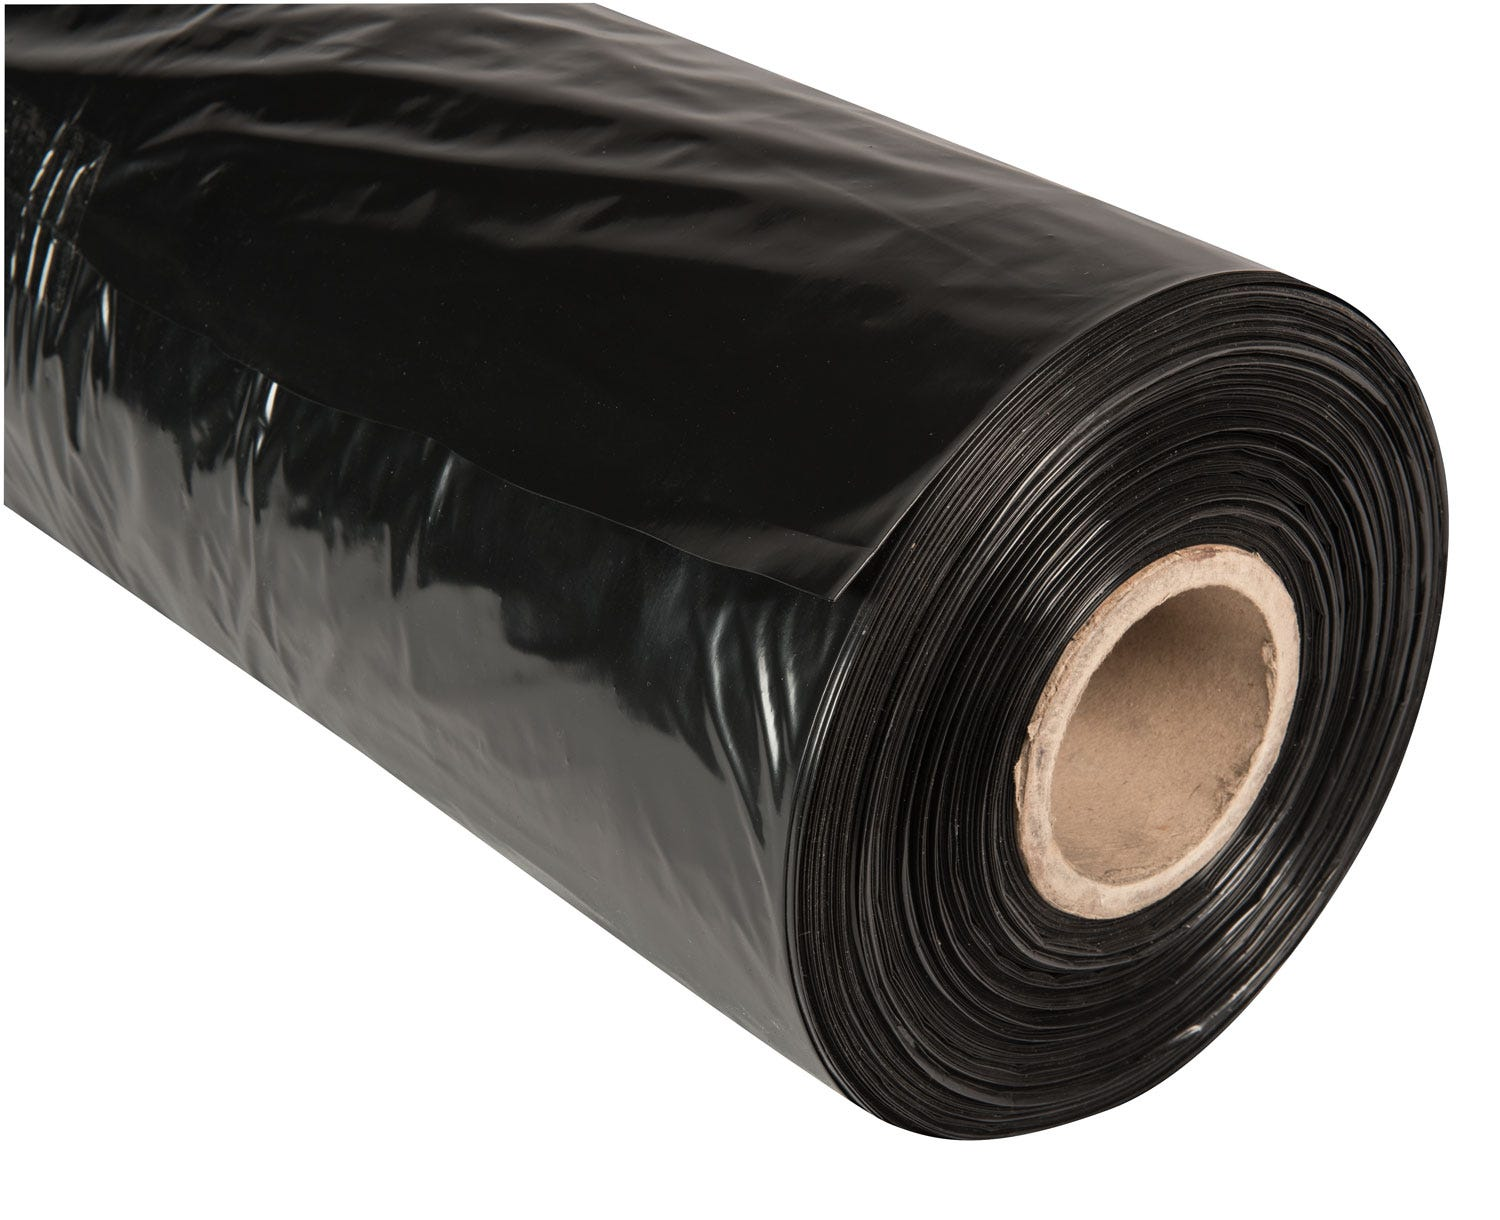 Transpal® Black LDPE Top Covers